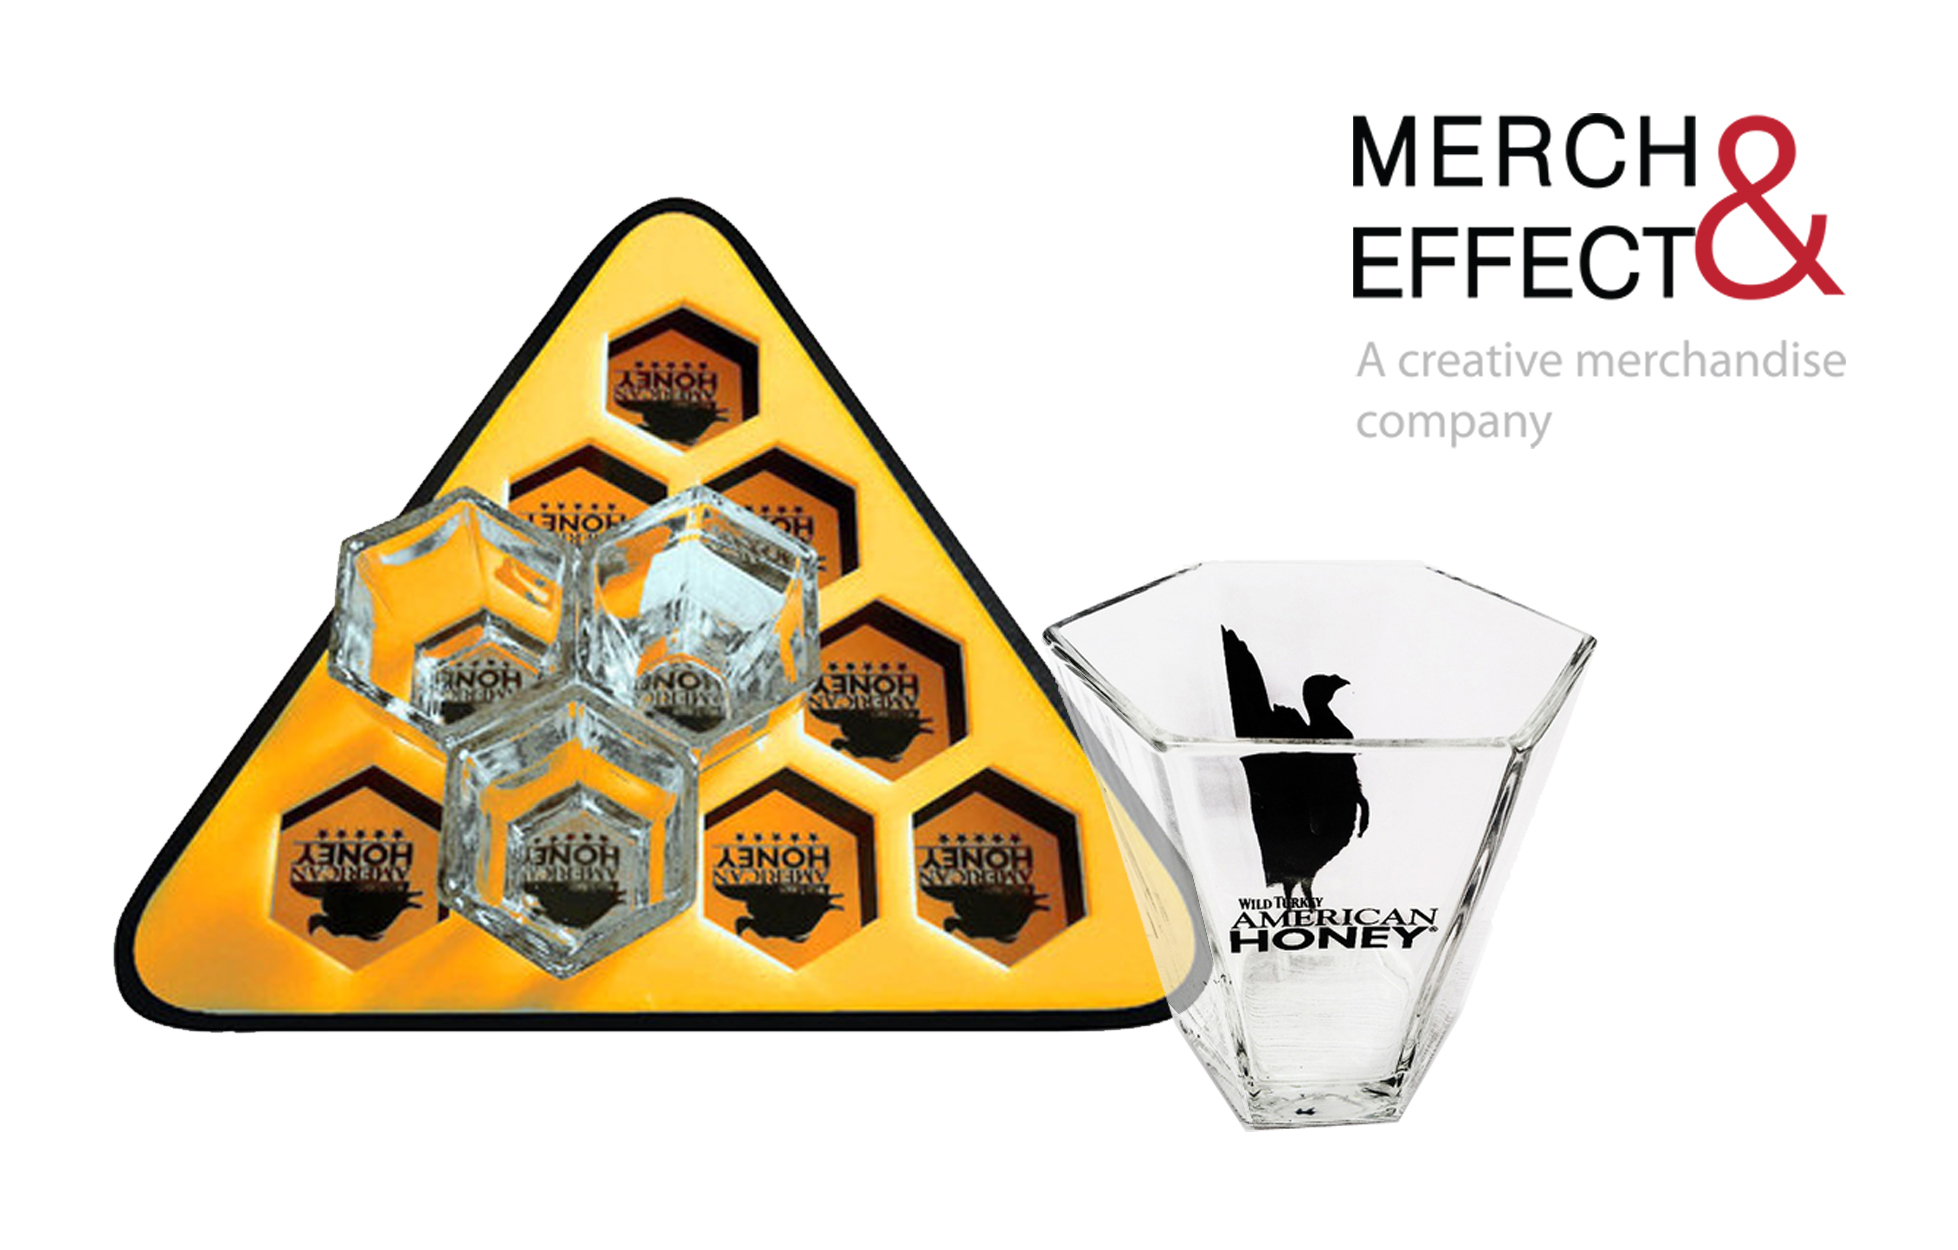 Glasses are also very versatile and  has a very broad demographic appeal. Everyone can appreciate a unique, fun, and creative way of enjoying the product that they have just bought. Also, there are many ways to integrate your brand  in the design. The honeycomb design of this tray and  shot glass for American Honey instantly recalls the brand's name and adds so much to the presentation. It also gives the ease of carrying them without having to worry about them slipping off the tray thanks to the innovative and complementing design of the tray and shot glasses.